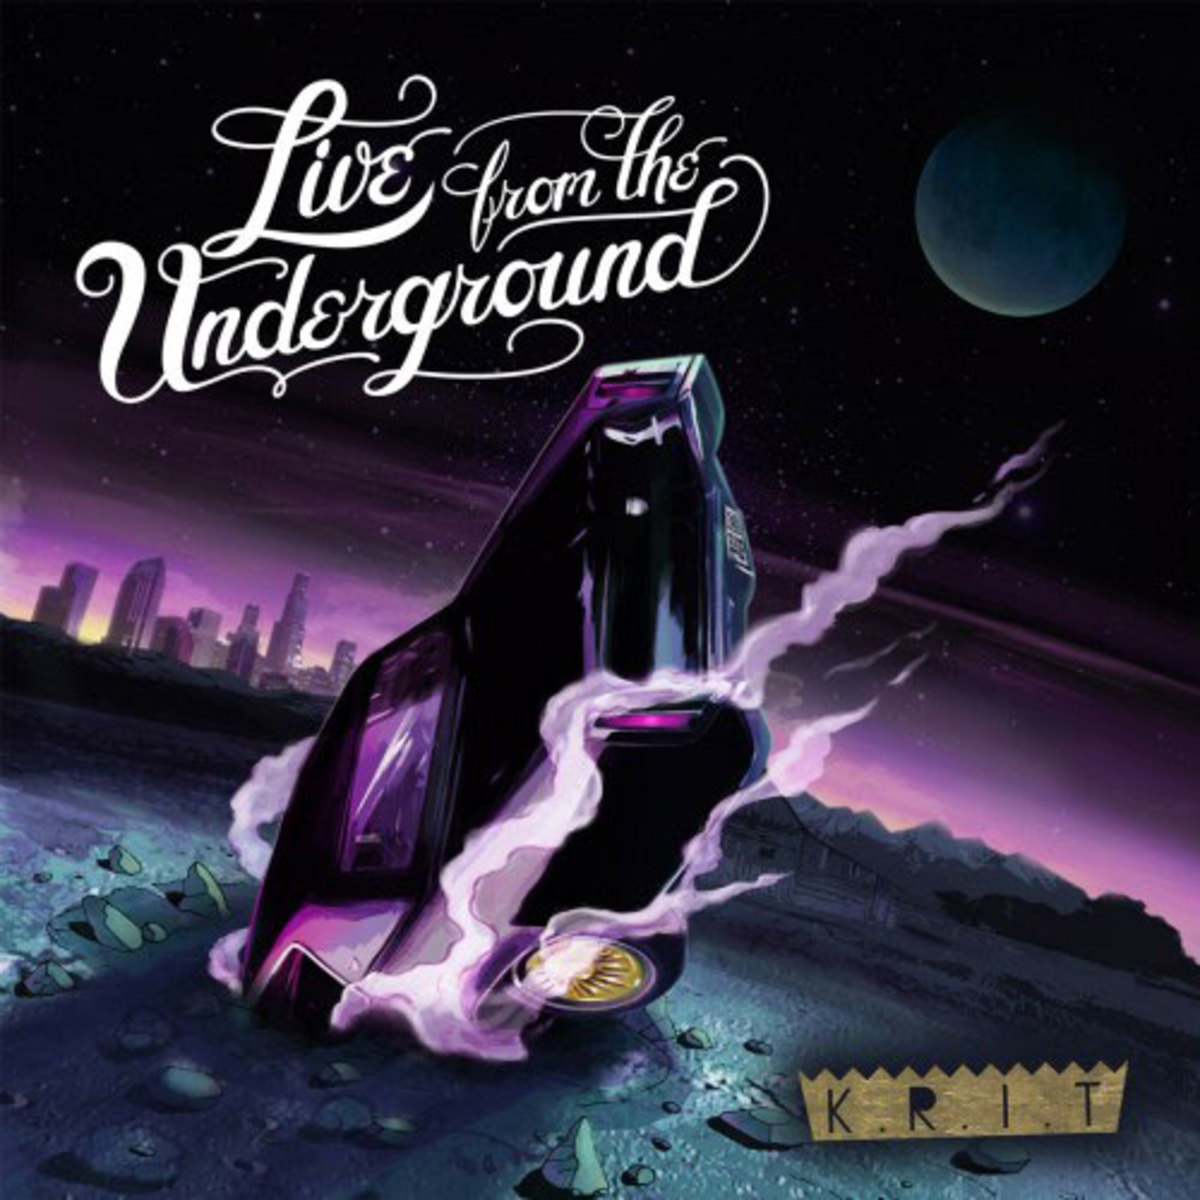 big-krit-live-from-the-underground.jpg